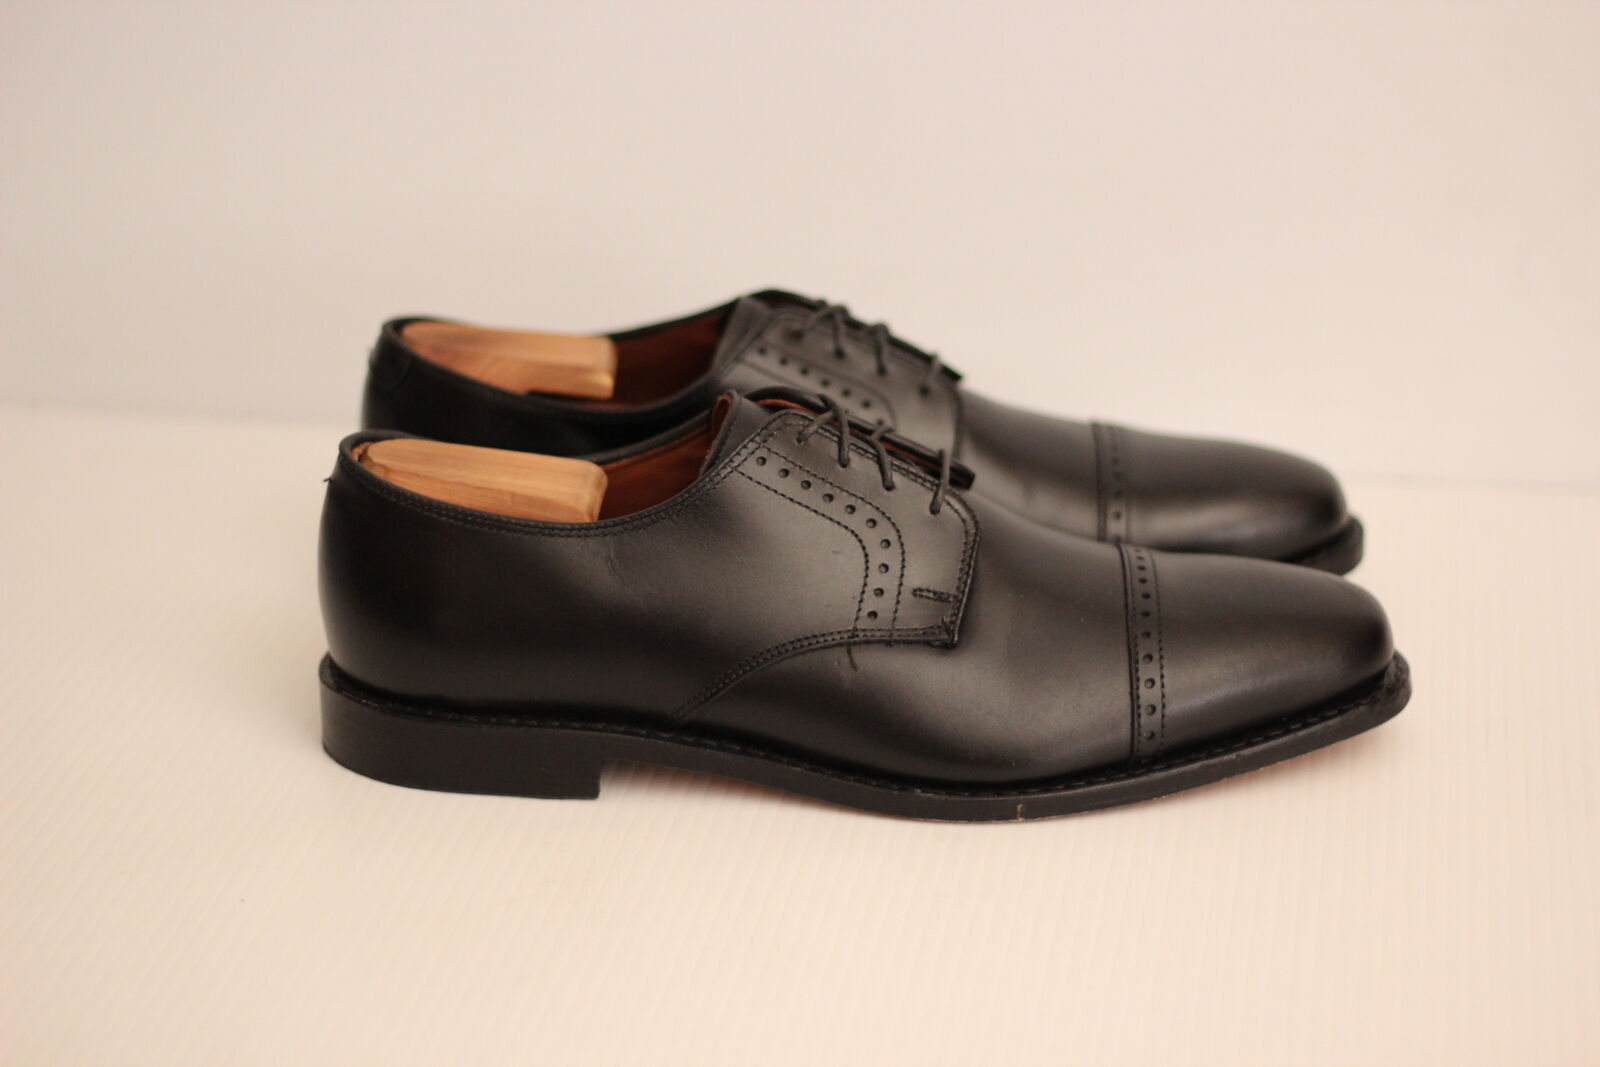 Allen Edmonds 'Clifton' Blucher Cap Toe Oxford - nero - 11 D  (W89)